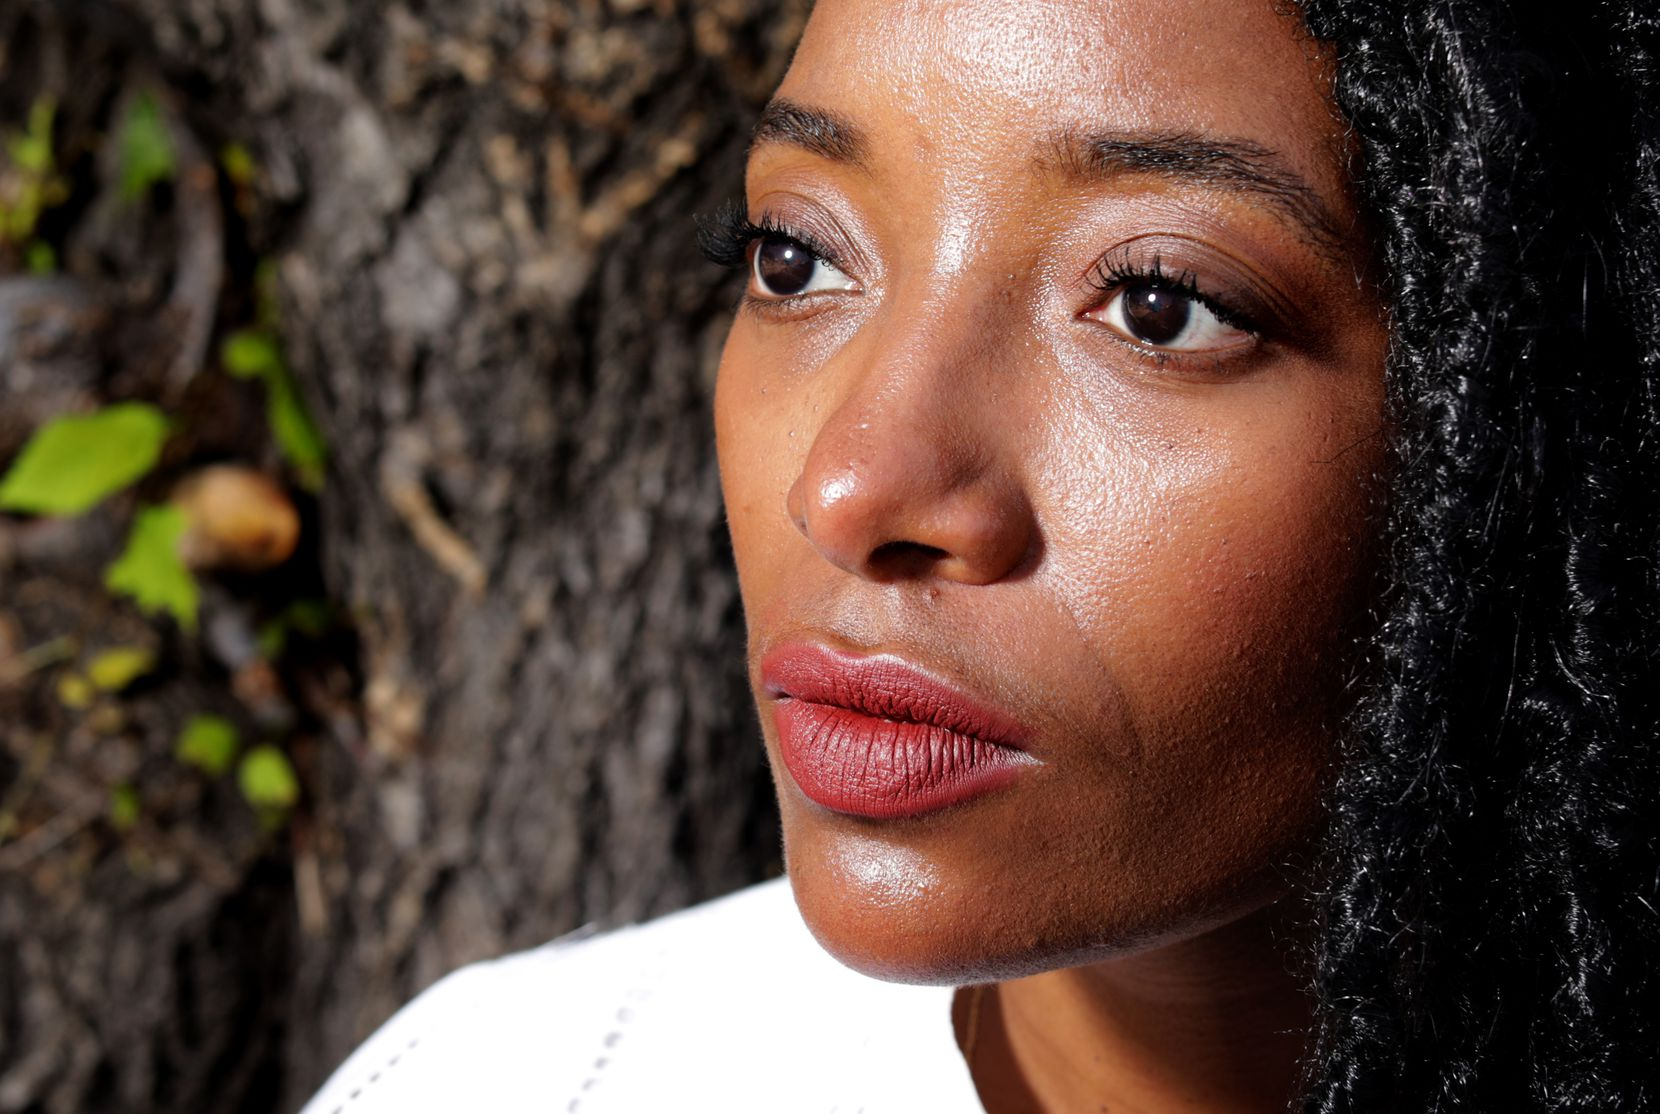 """Amber Sims says that out of this """"year of discomfort"""" has grown an even greater desire to do anti-racism work and """"to think harder about what do I want my impact in the world to be?"""""""